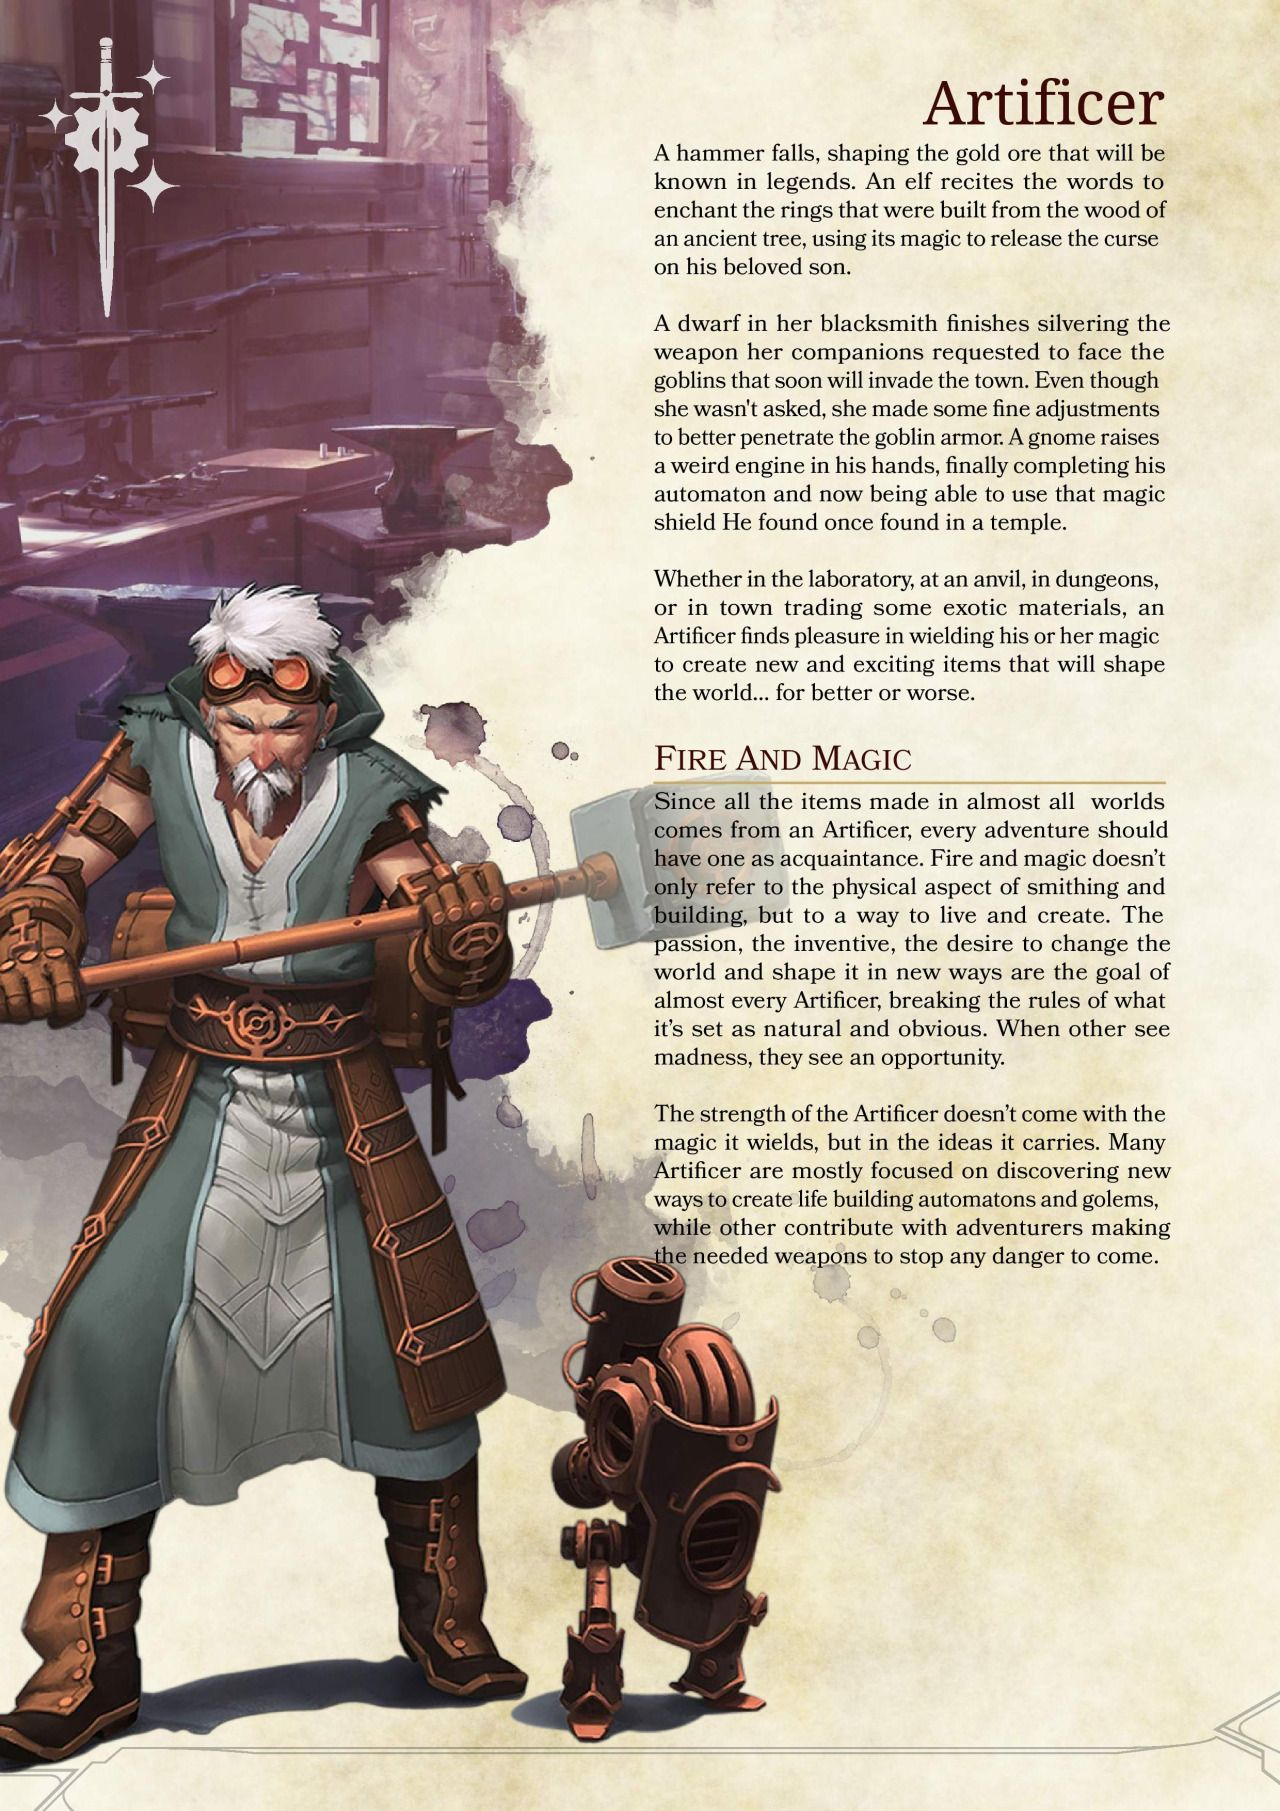 5e artificer guide